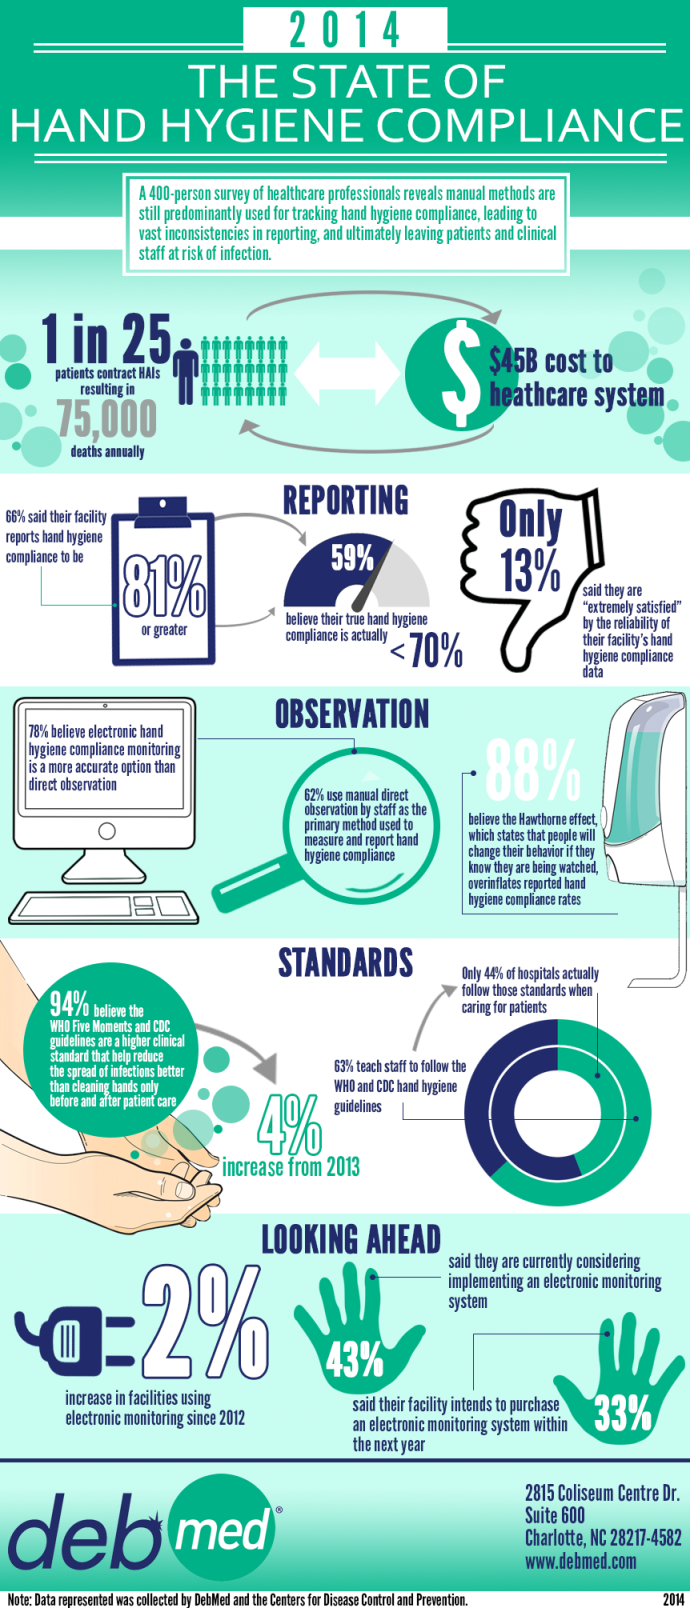 The State of Hand Hygiene Compliance Infographic